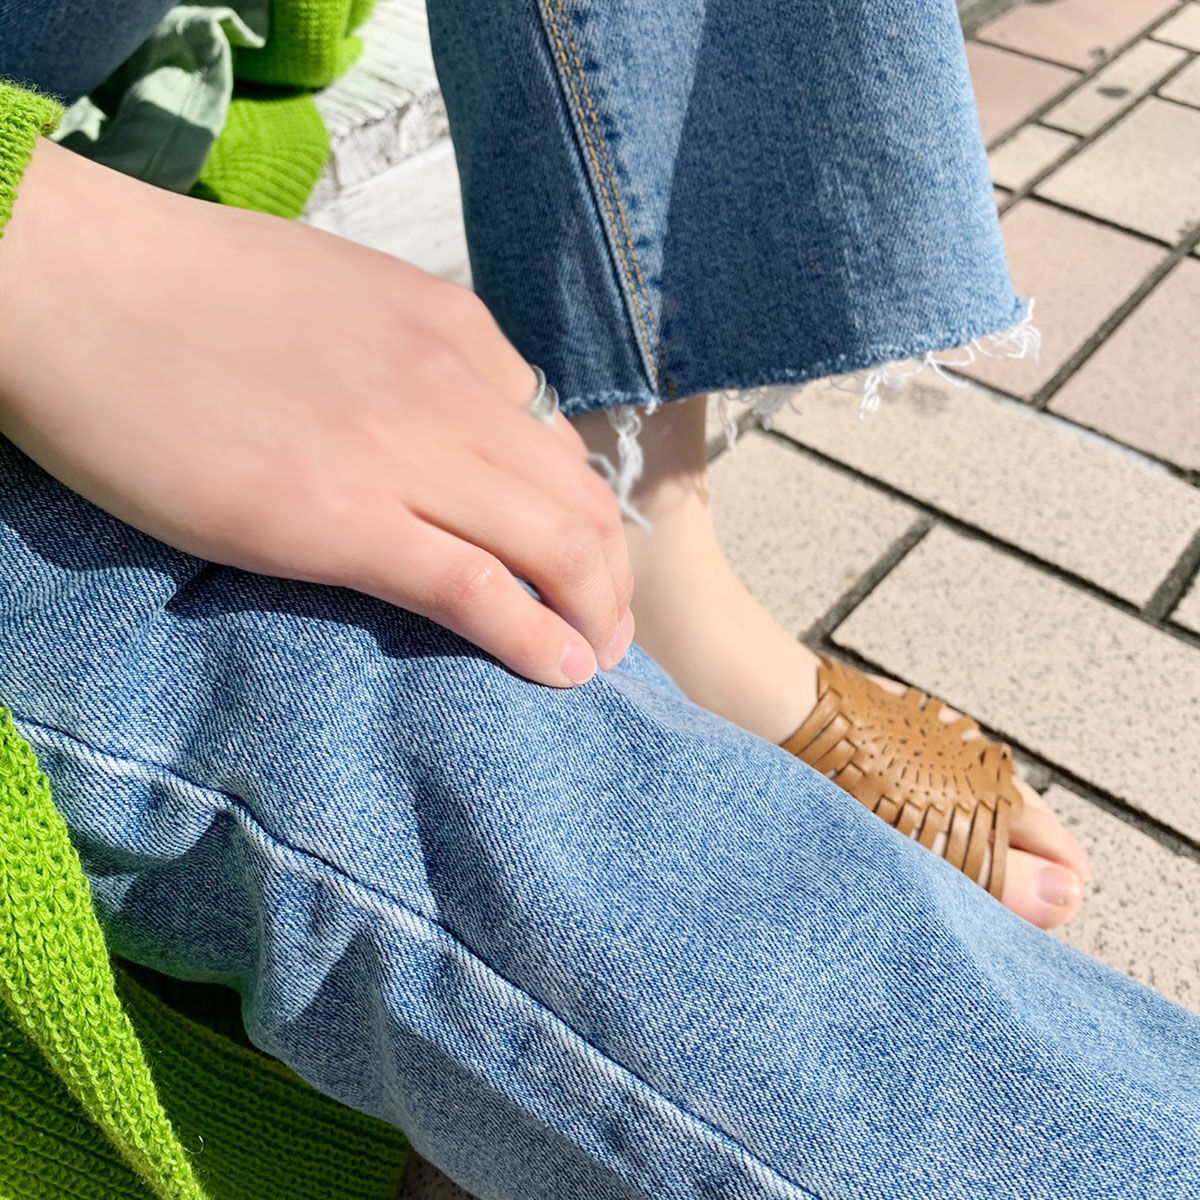 BAD/【 DAZZLE 】Must have Jeans(0S37000G)